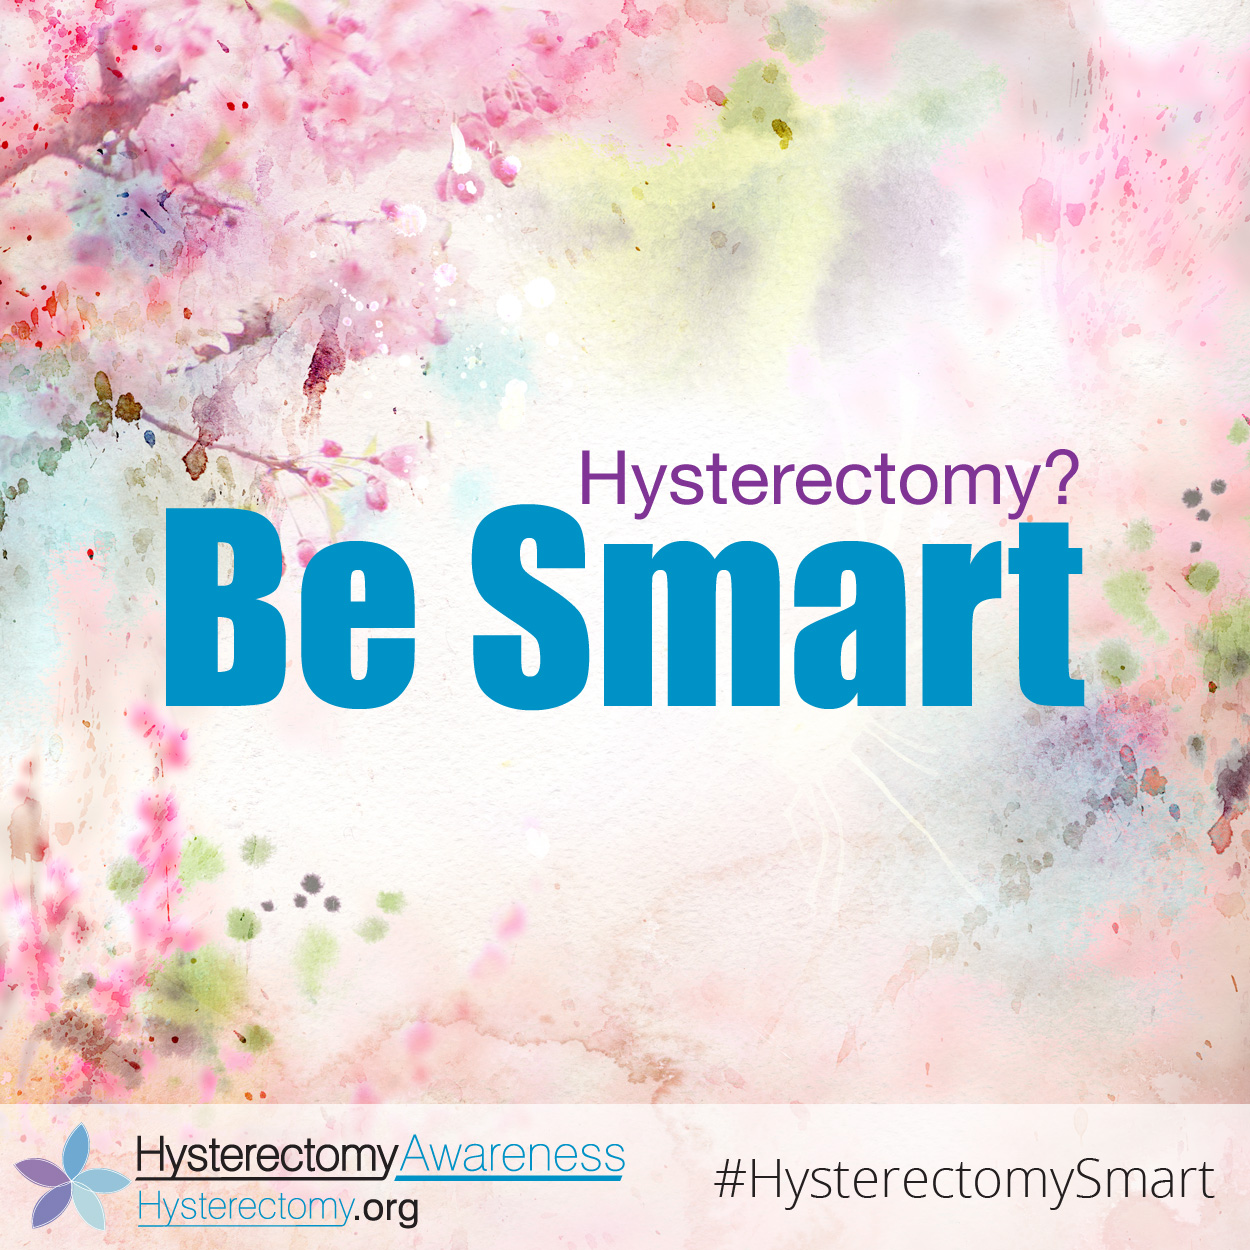 Are there Reasons NOT to Have a Hysterectomy?